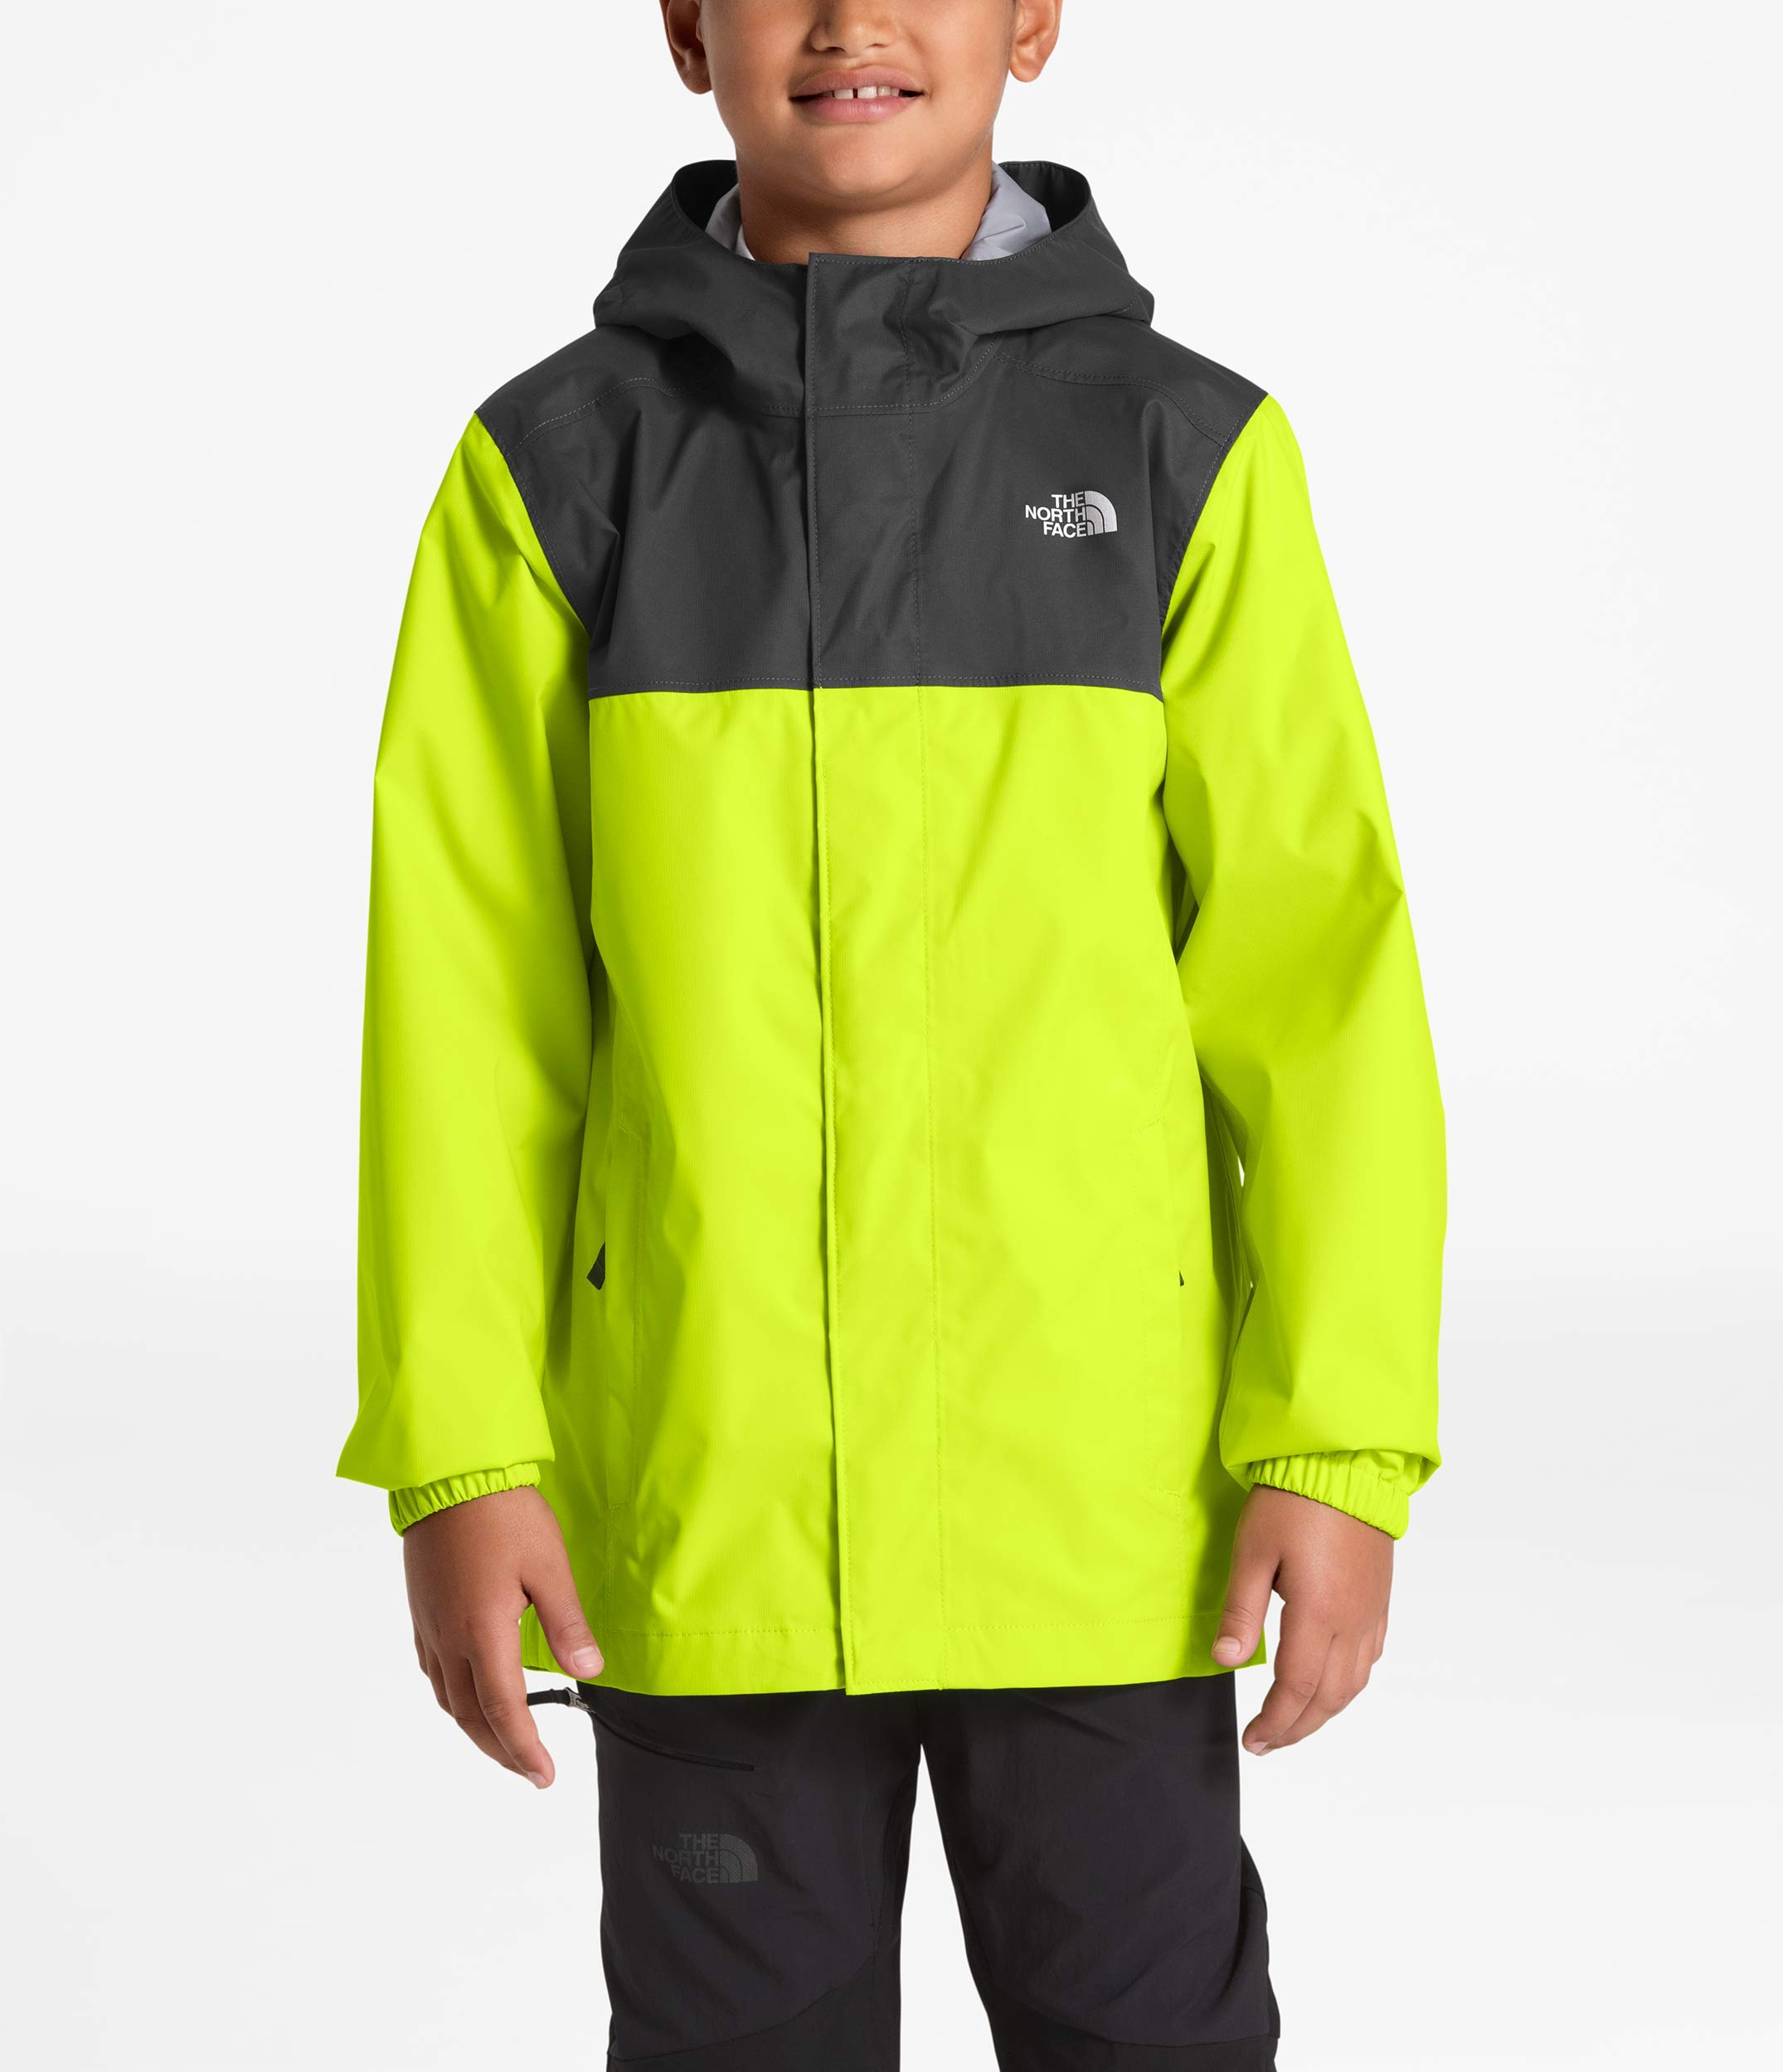 The North Face Kids Boy's Resolve Reflective Jacket (Little Kids/Big Kids) Lime Green Small by The North Face (Image #2)